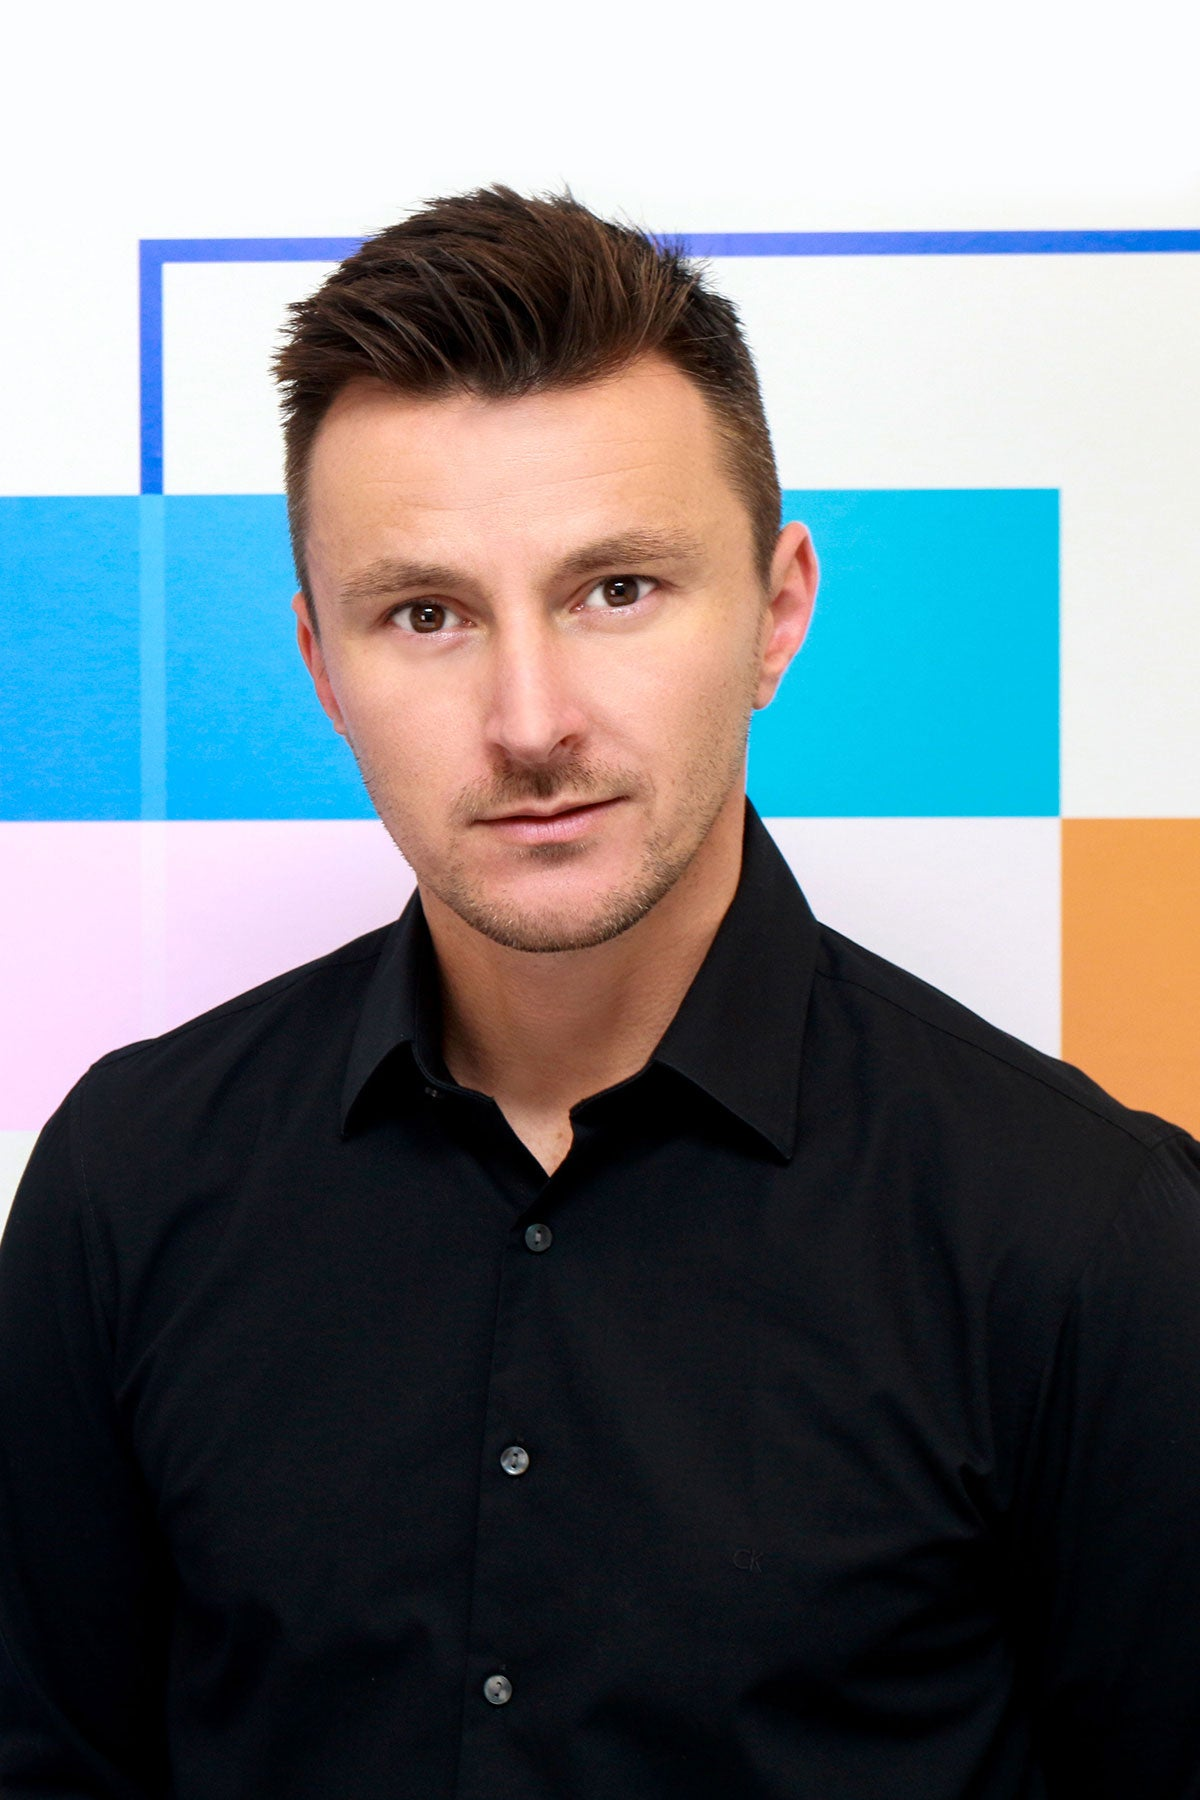 Radoslav Nedelchev, Acting CEO Dentsu Aegis Network Croatia and Chief Operating Officer, Dentsu Aegis Network Bulgaria